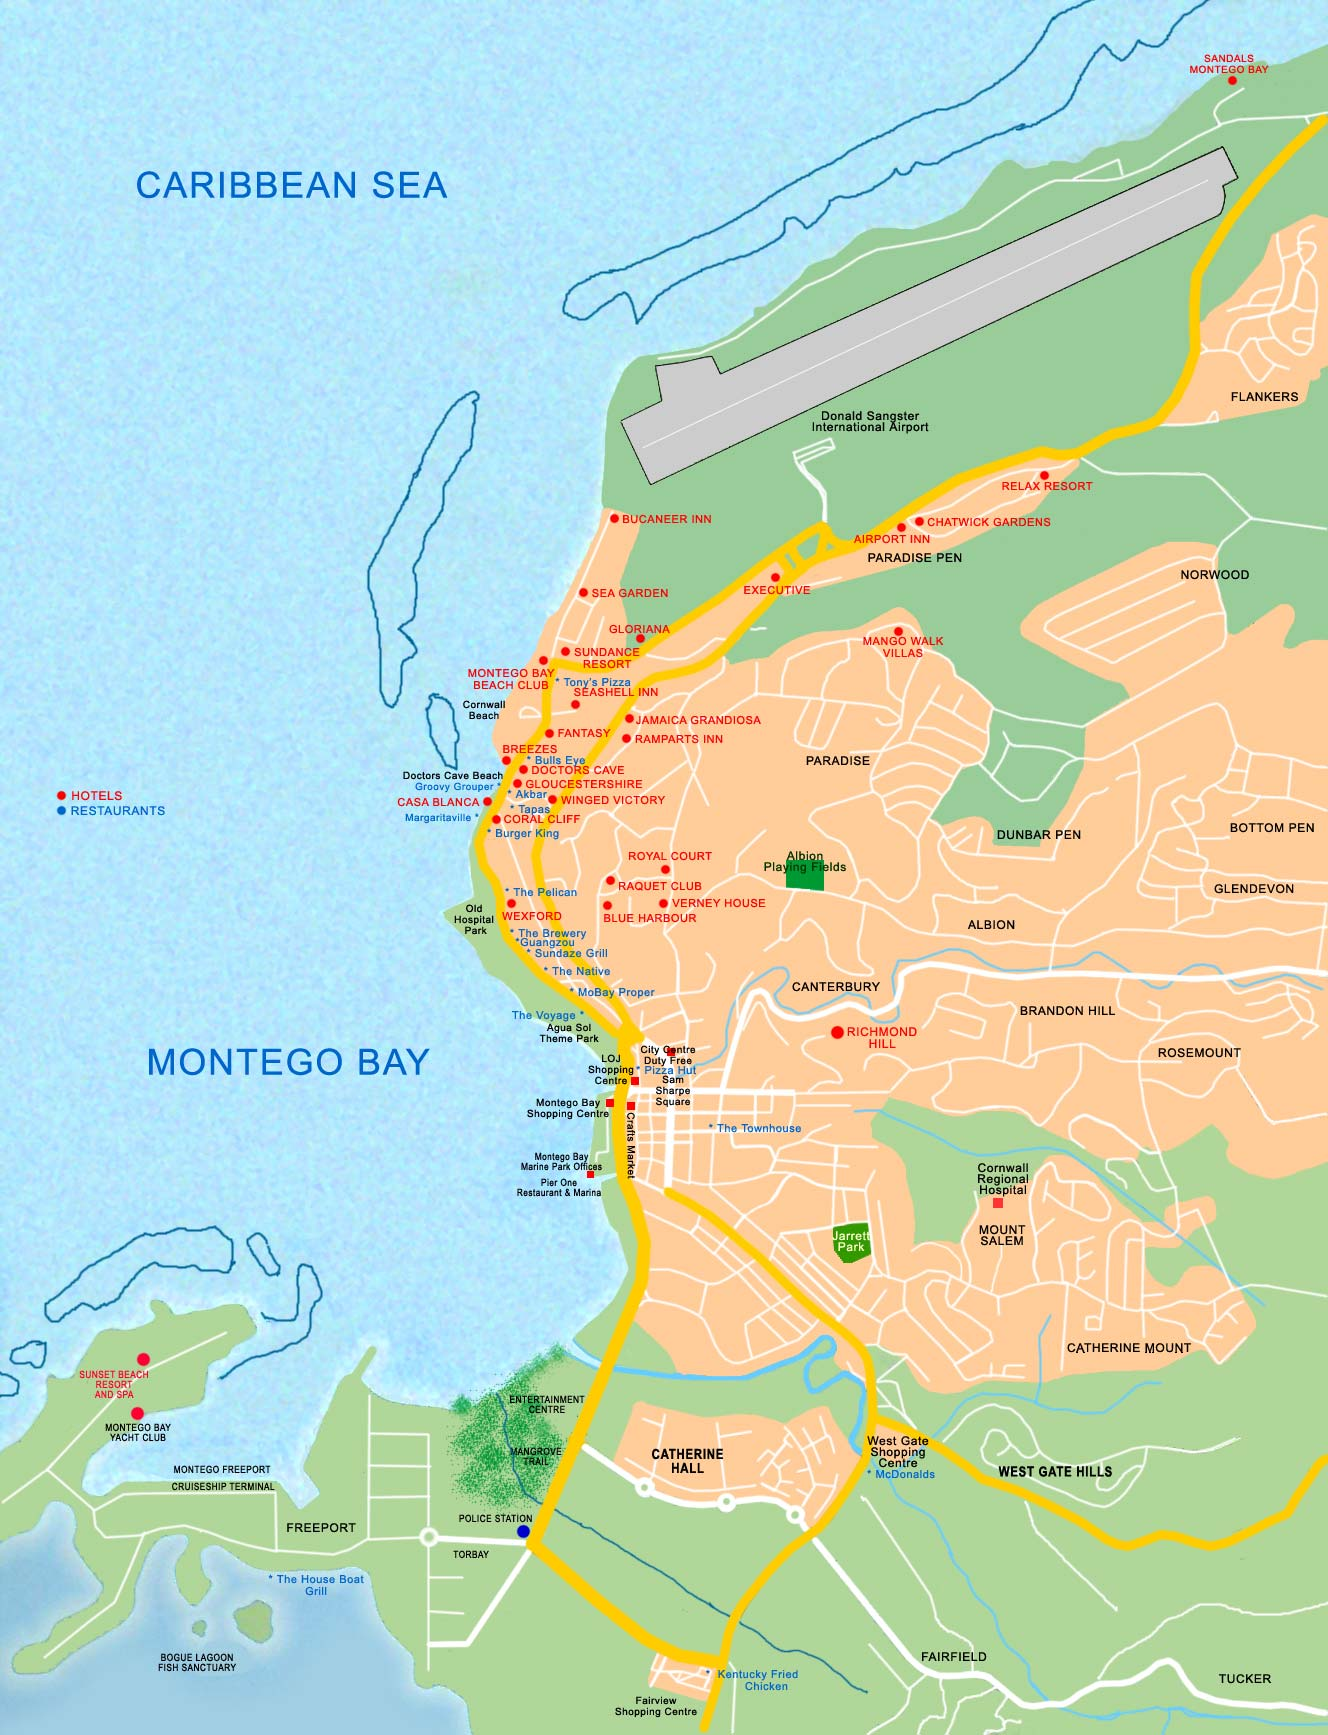 Large montego bay maps for free download and print high resolution large map of montego bay 1 gumiabroncs Choice Image